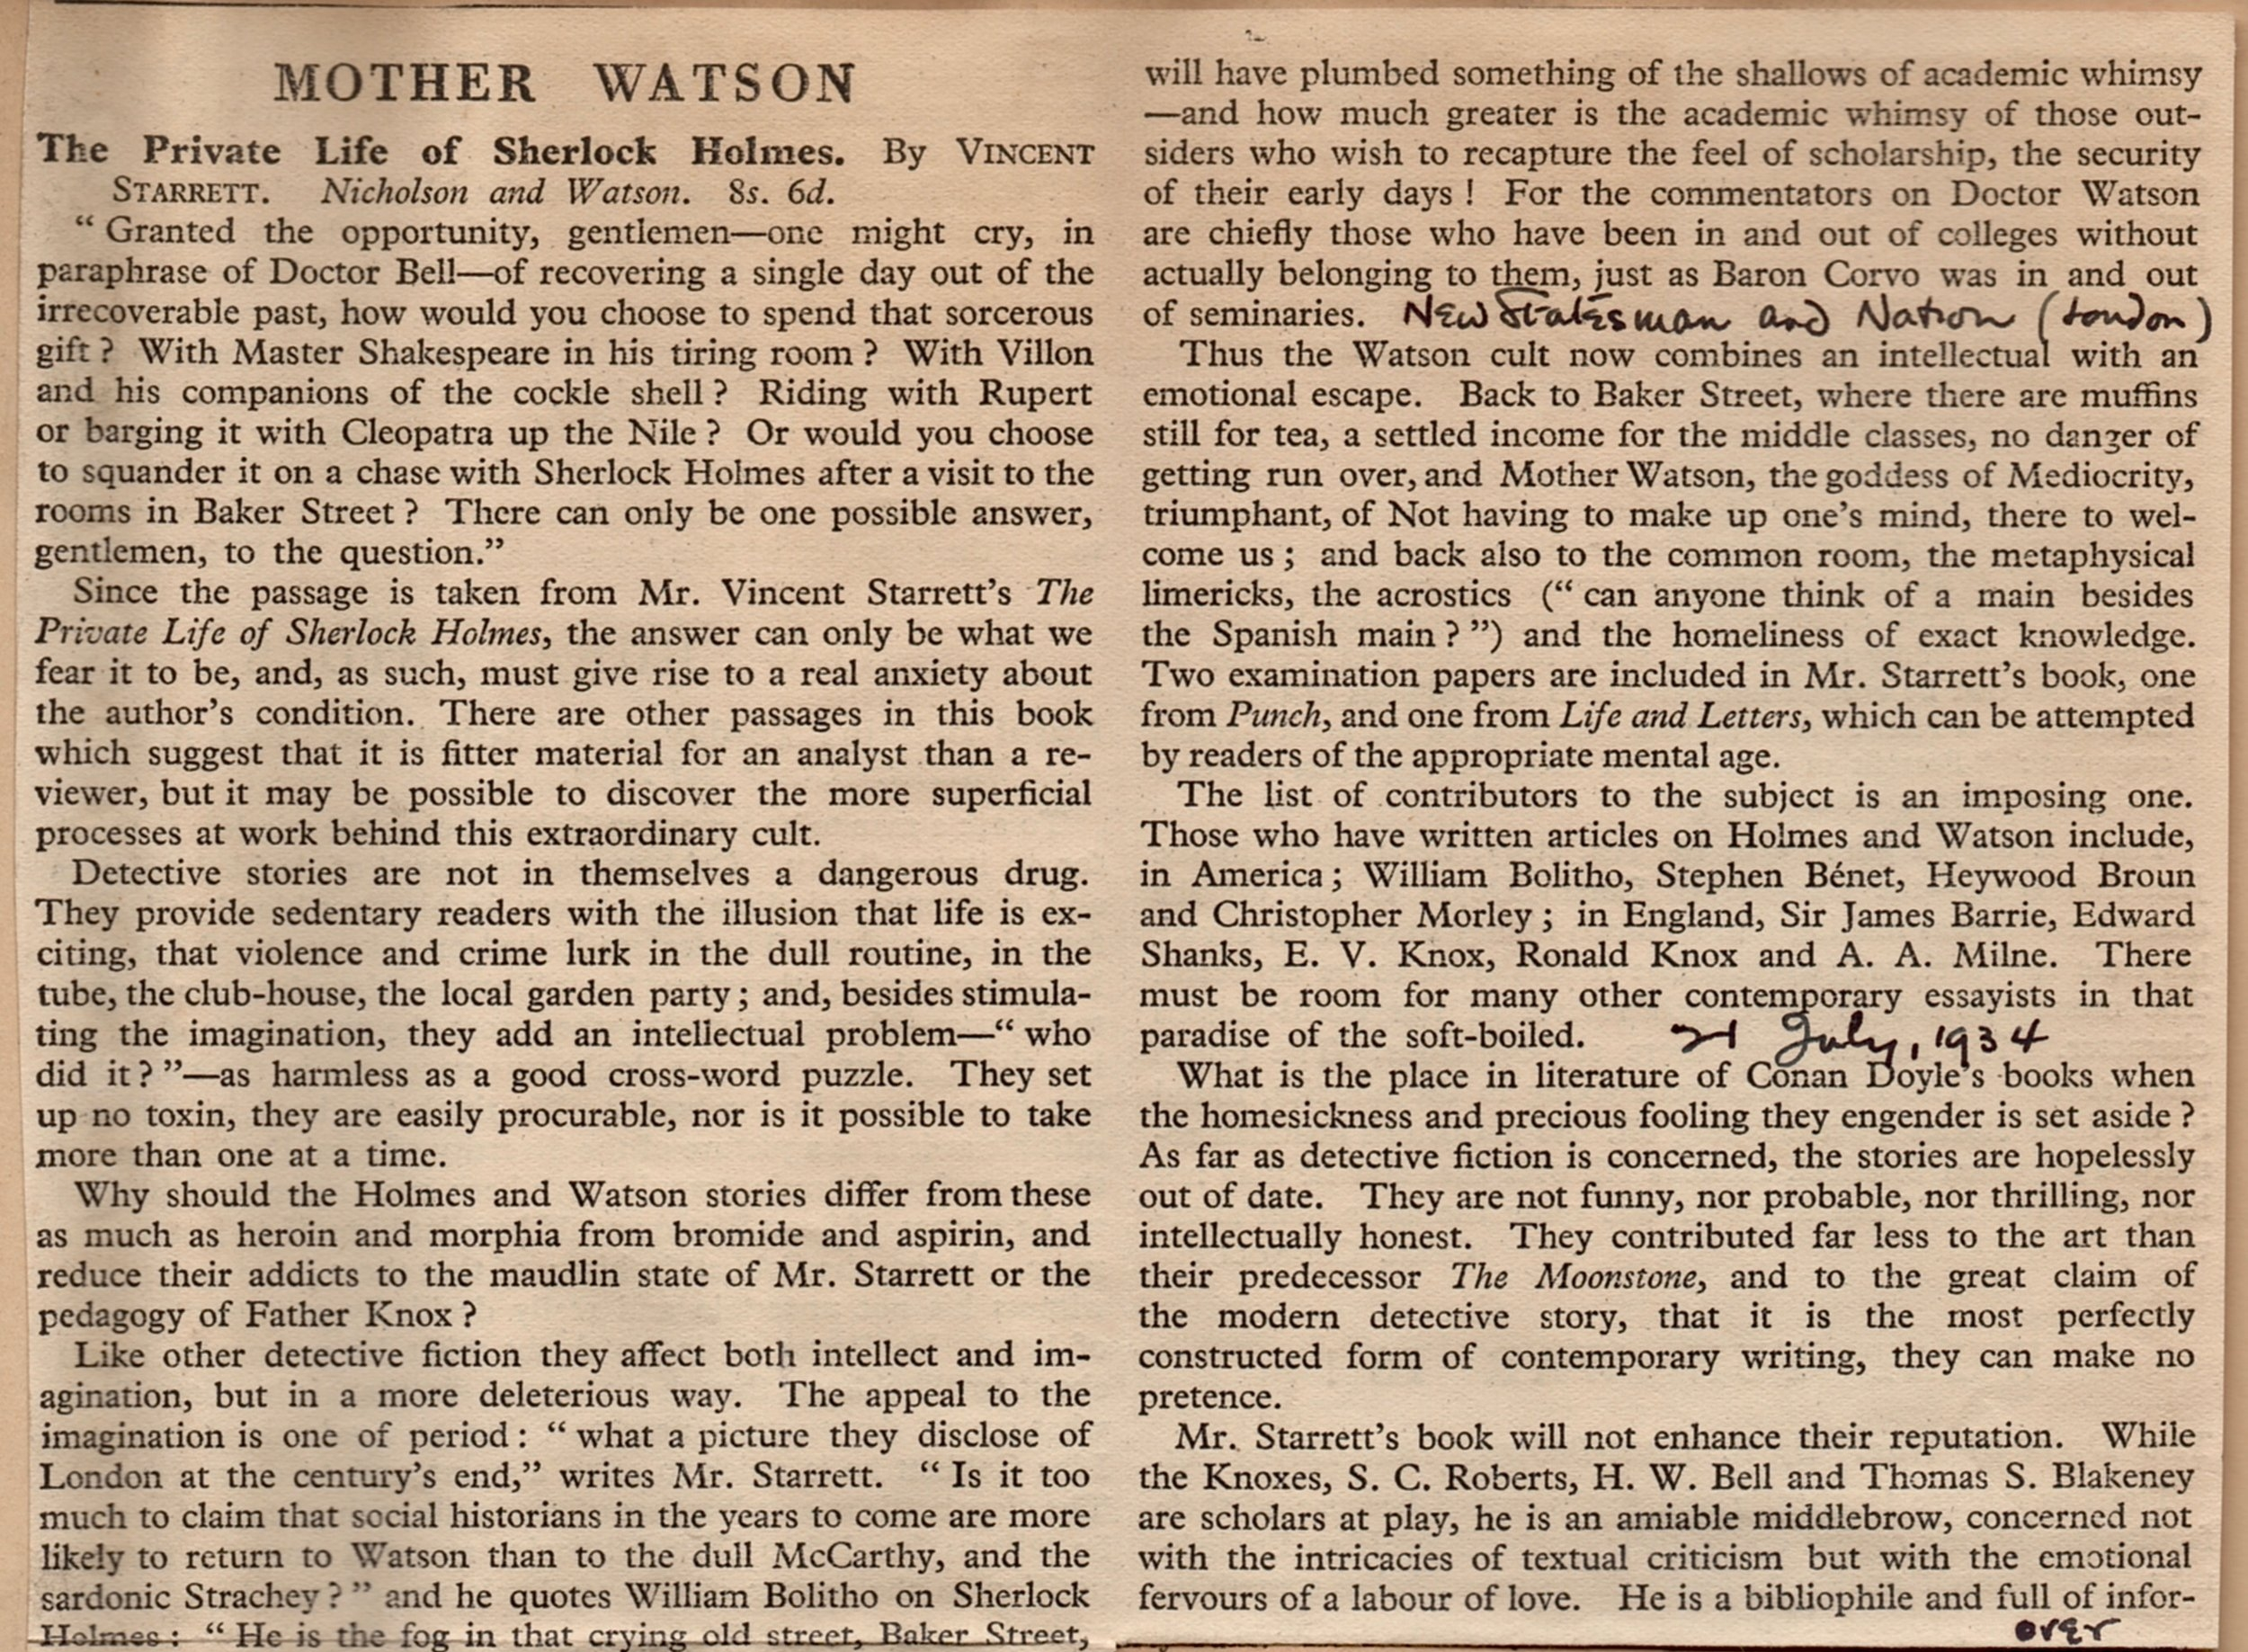 A portion of Cyril Connolly's caustic review from  The New Statesman and Nation  of July 21, 1934.